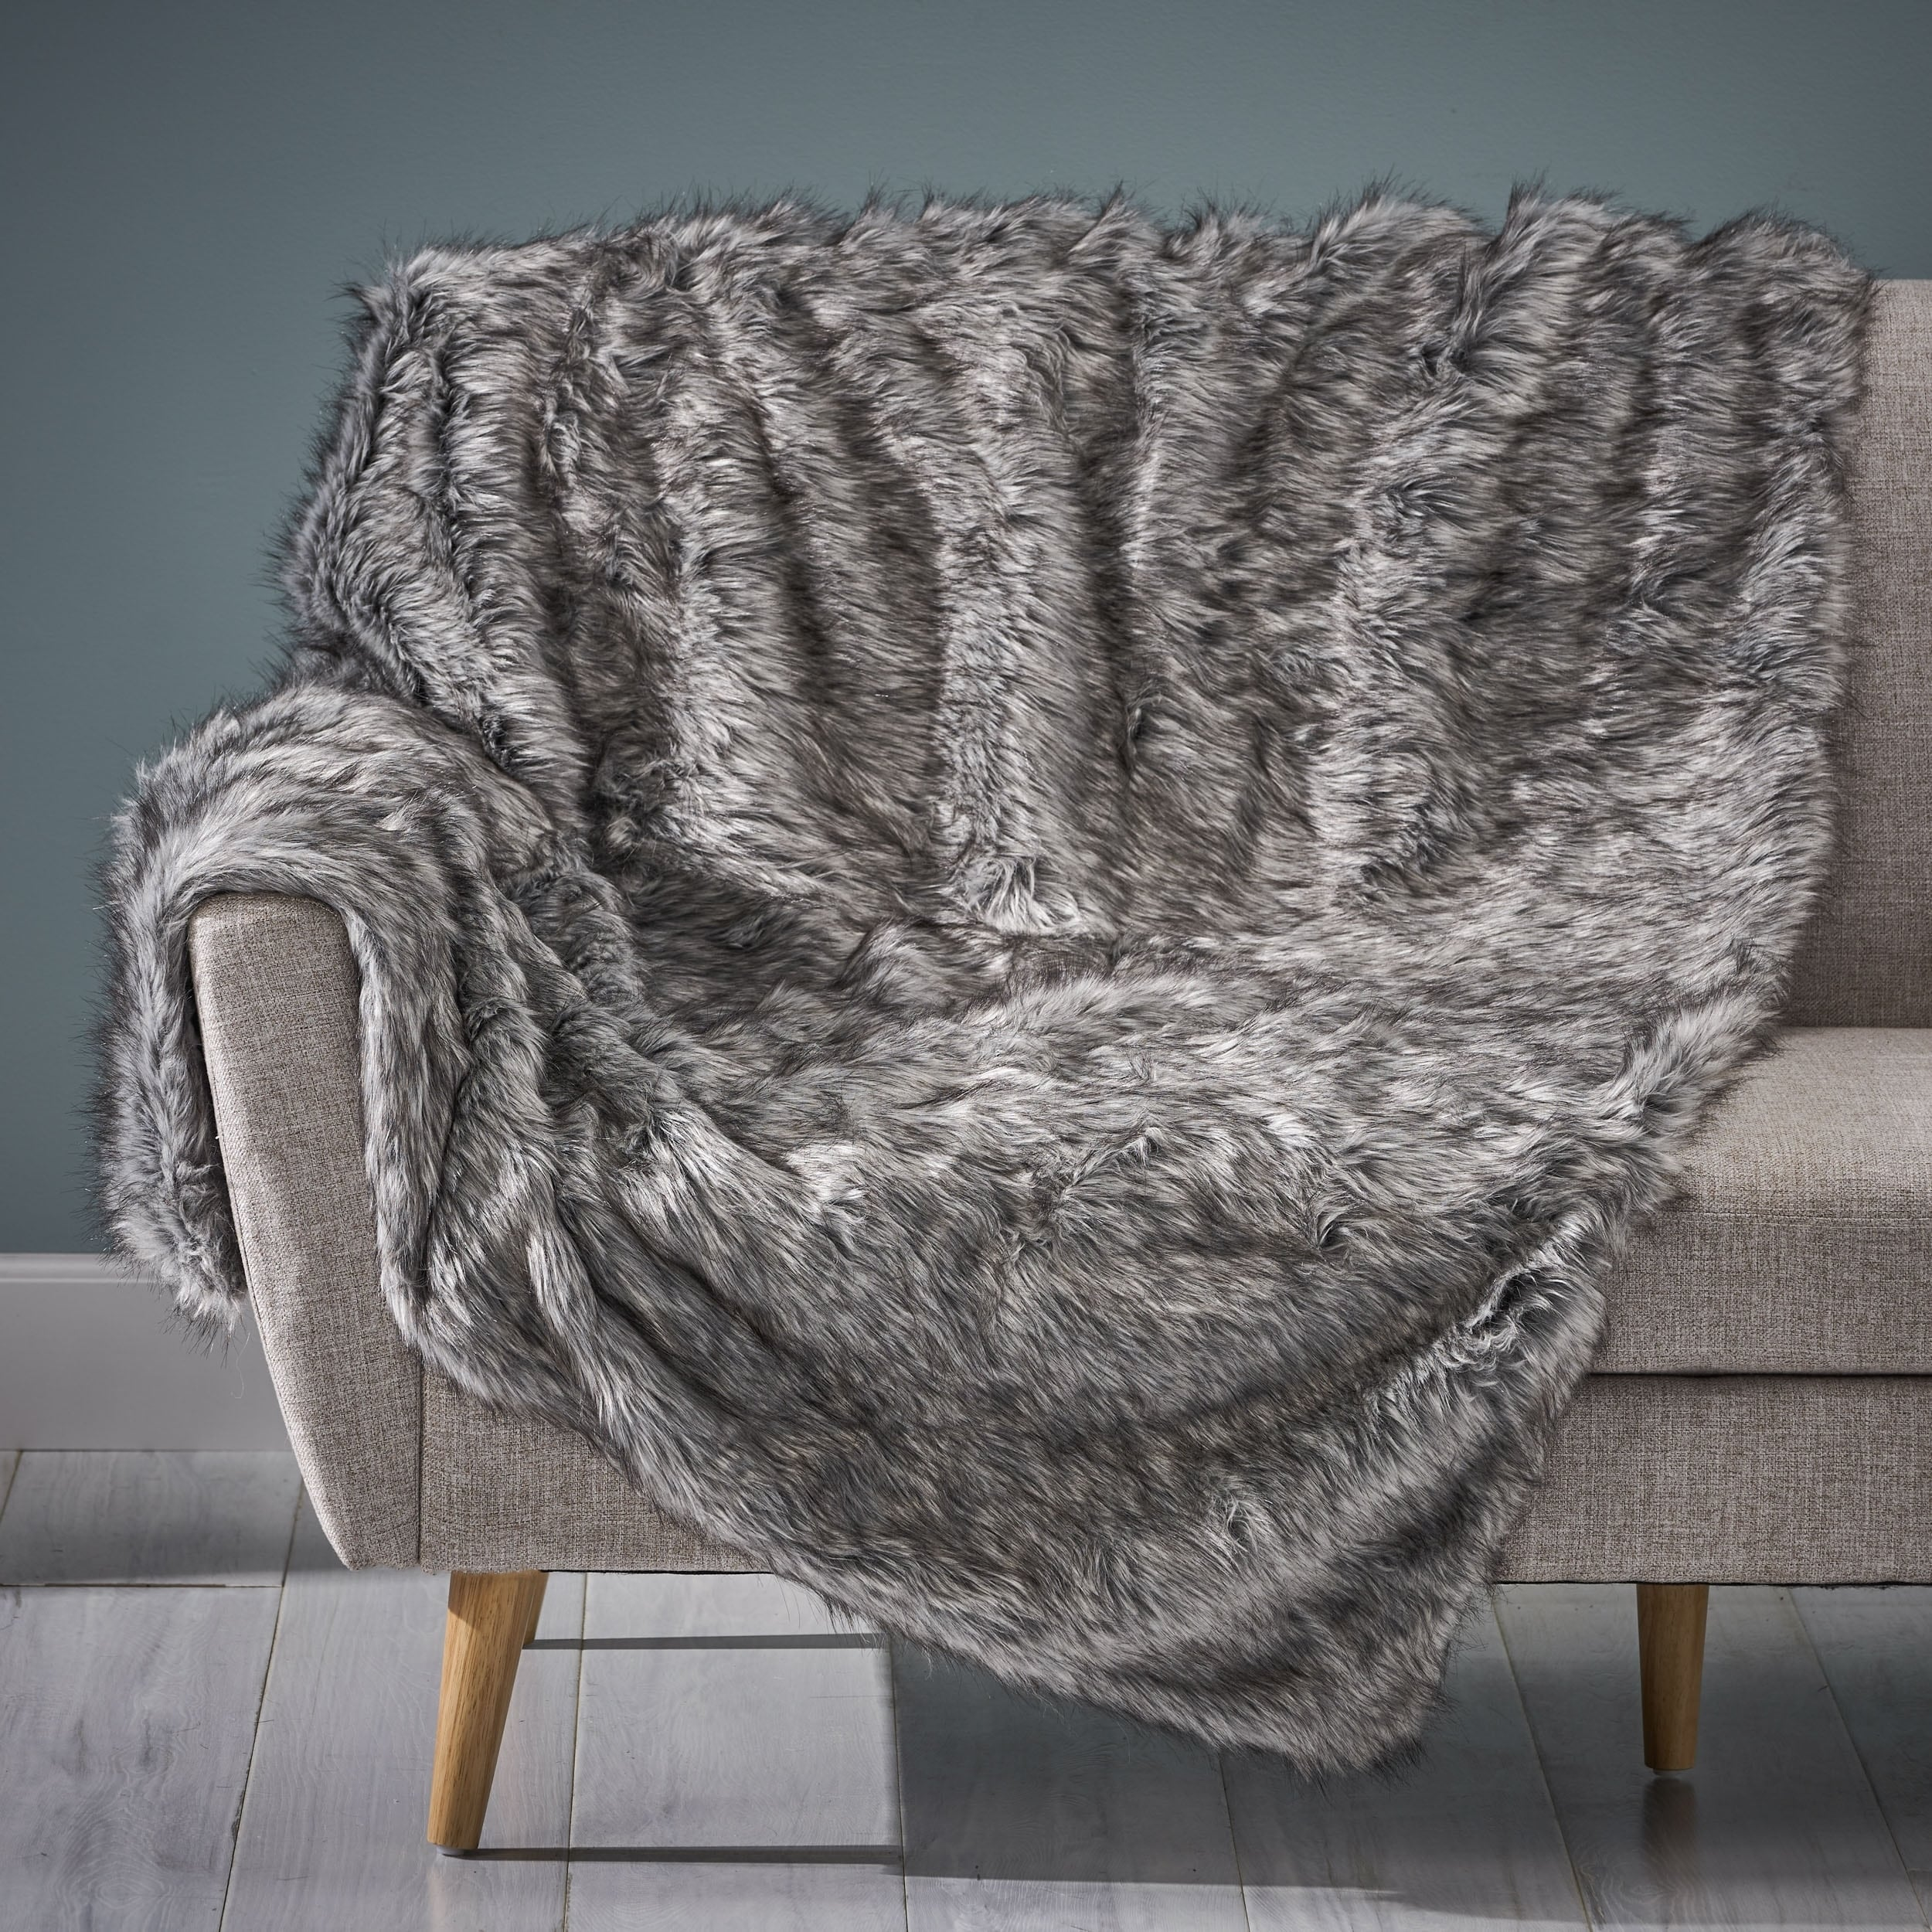 Warrin Faux Fur Throw Blanket by Christopher Knight Home in Dark Grey/Light Grey Streaks (As Is Item)